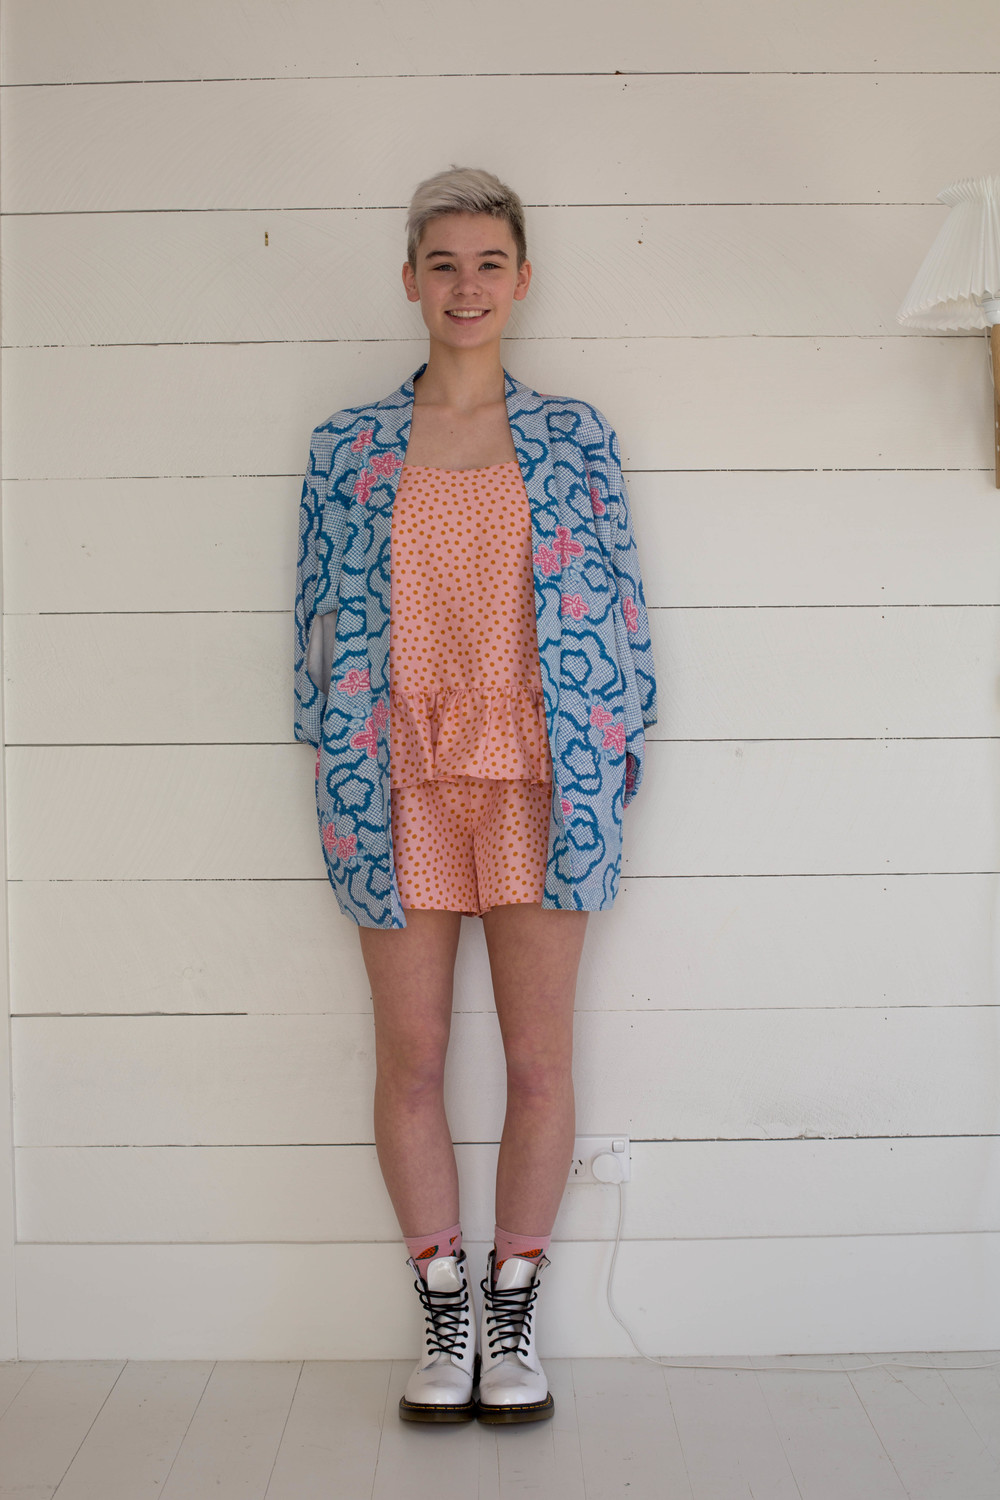 Ace Ruffle Playsuit with vintage child's Kimono